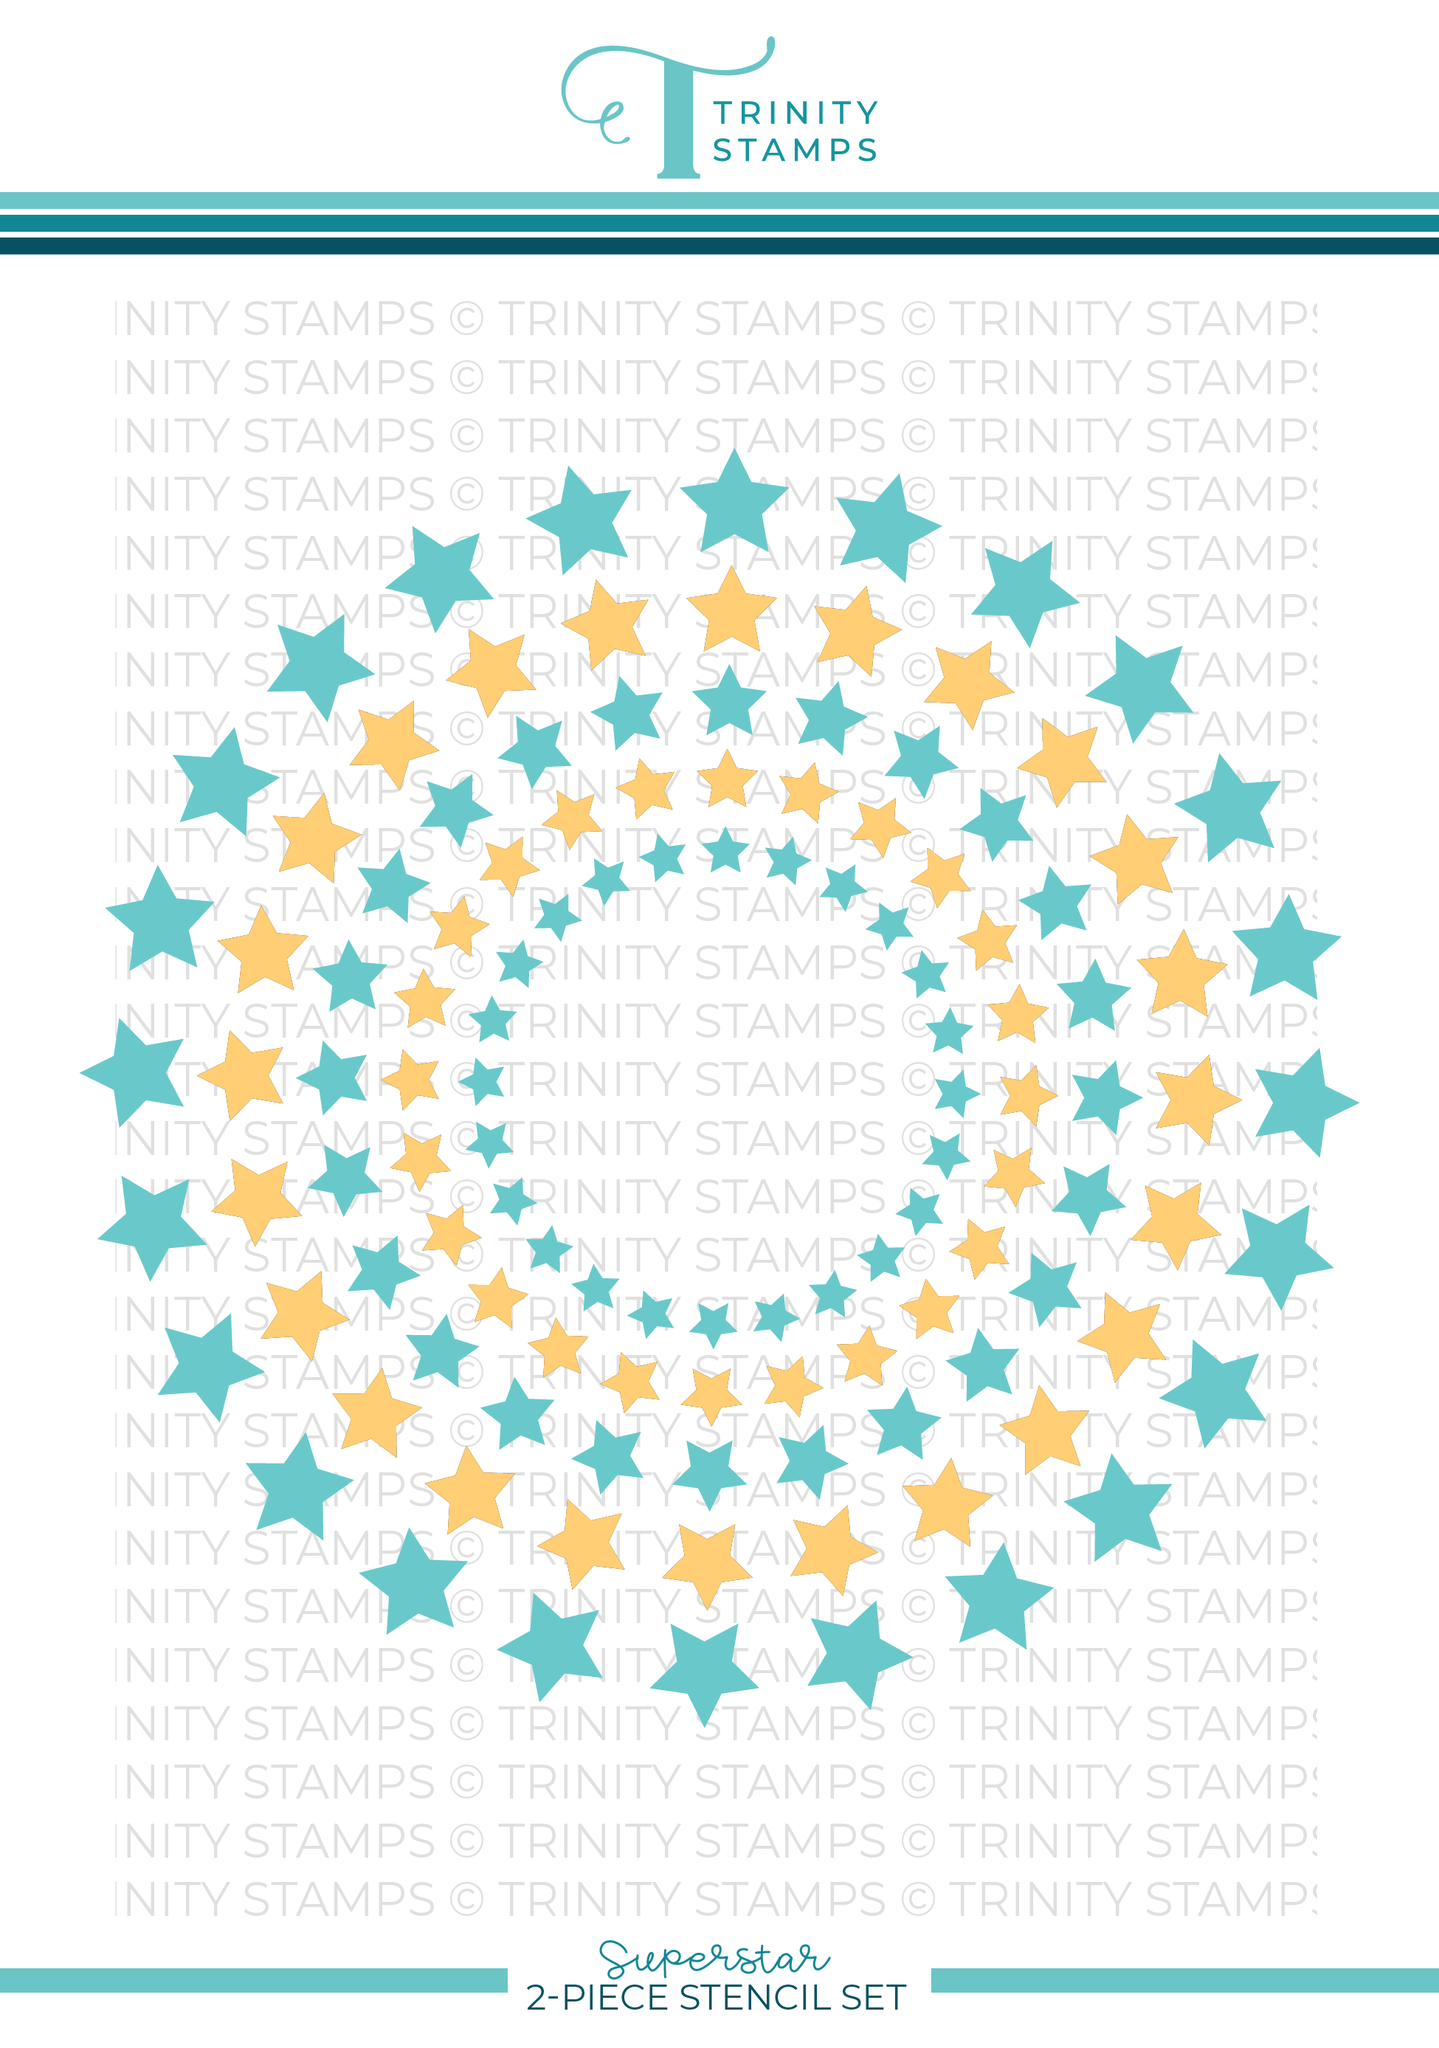 "*NEW* - Trinity Stamps - Superstar - 6x6"" Laser Cut 2-piece Stencil Set"